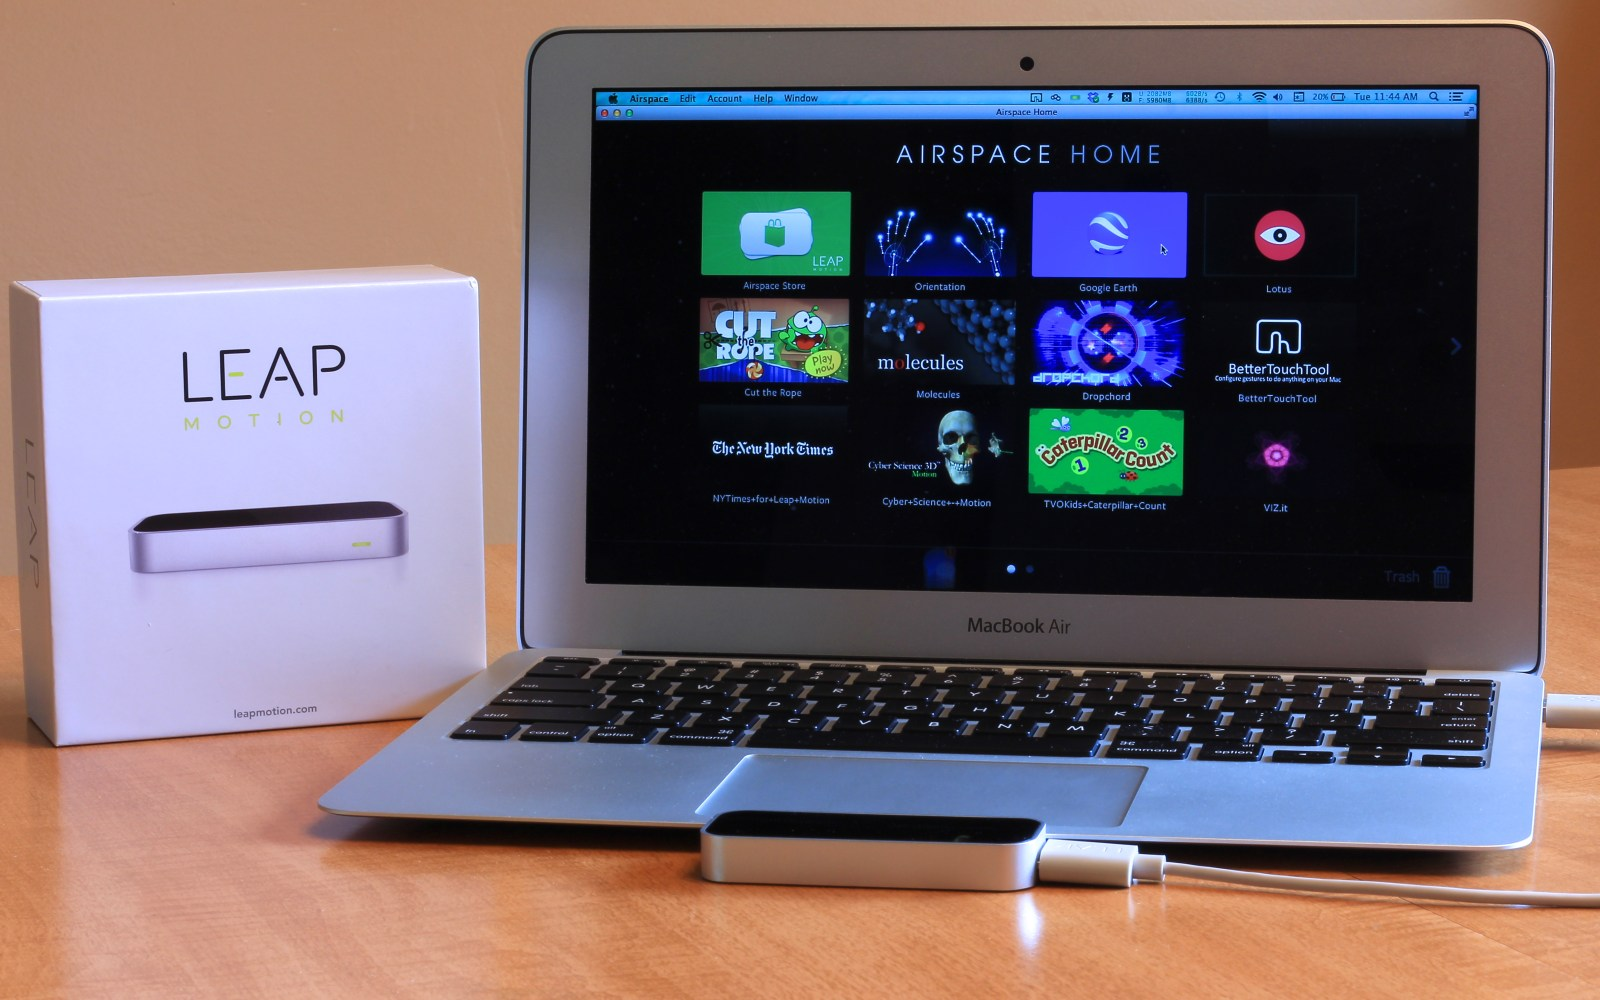 Review: Leap Motion is a fascinating, yet flawed look into the future of computing